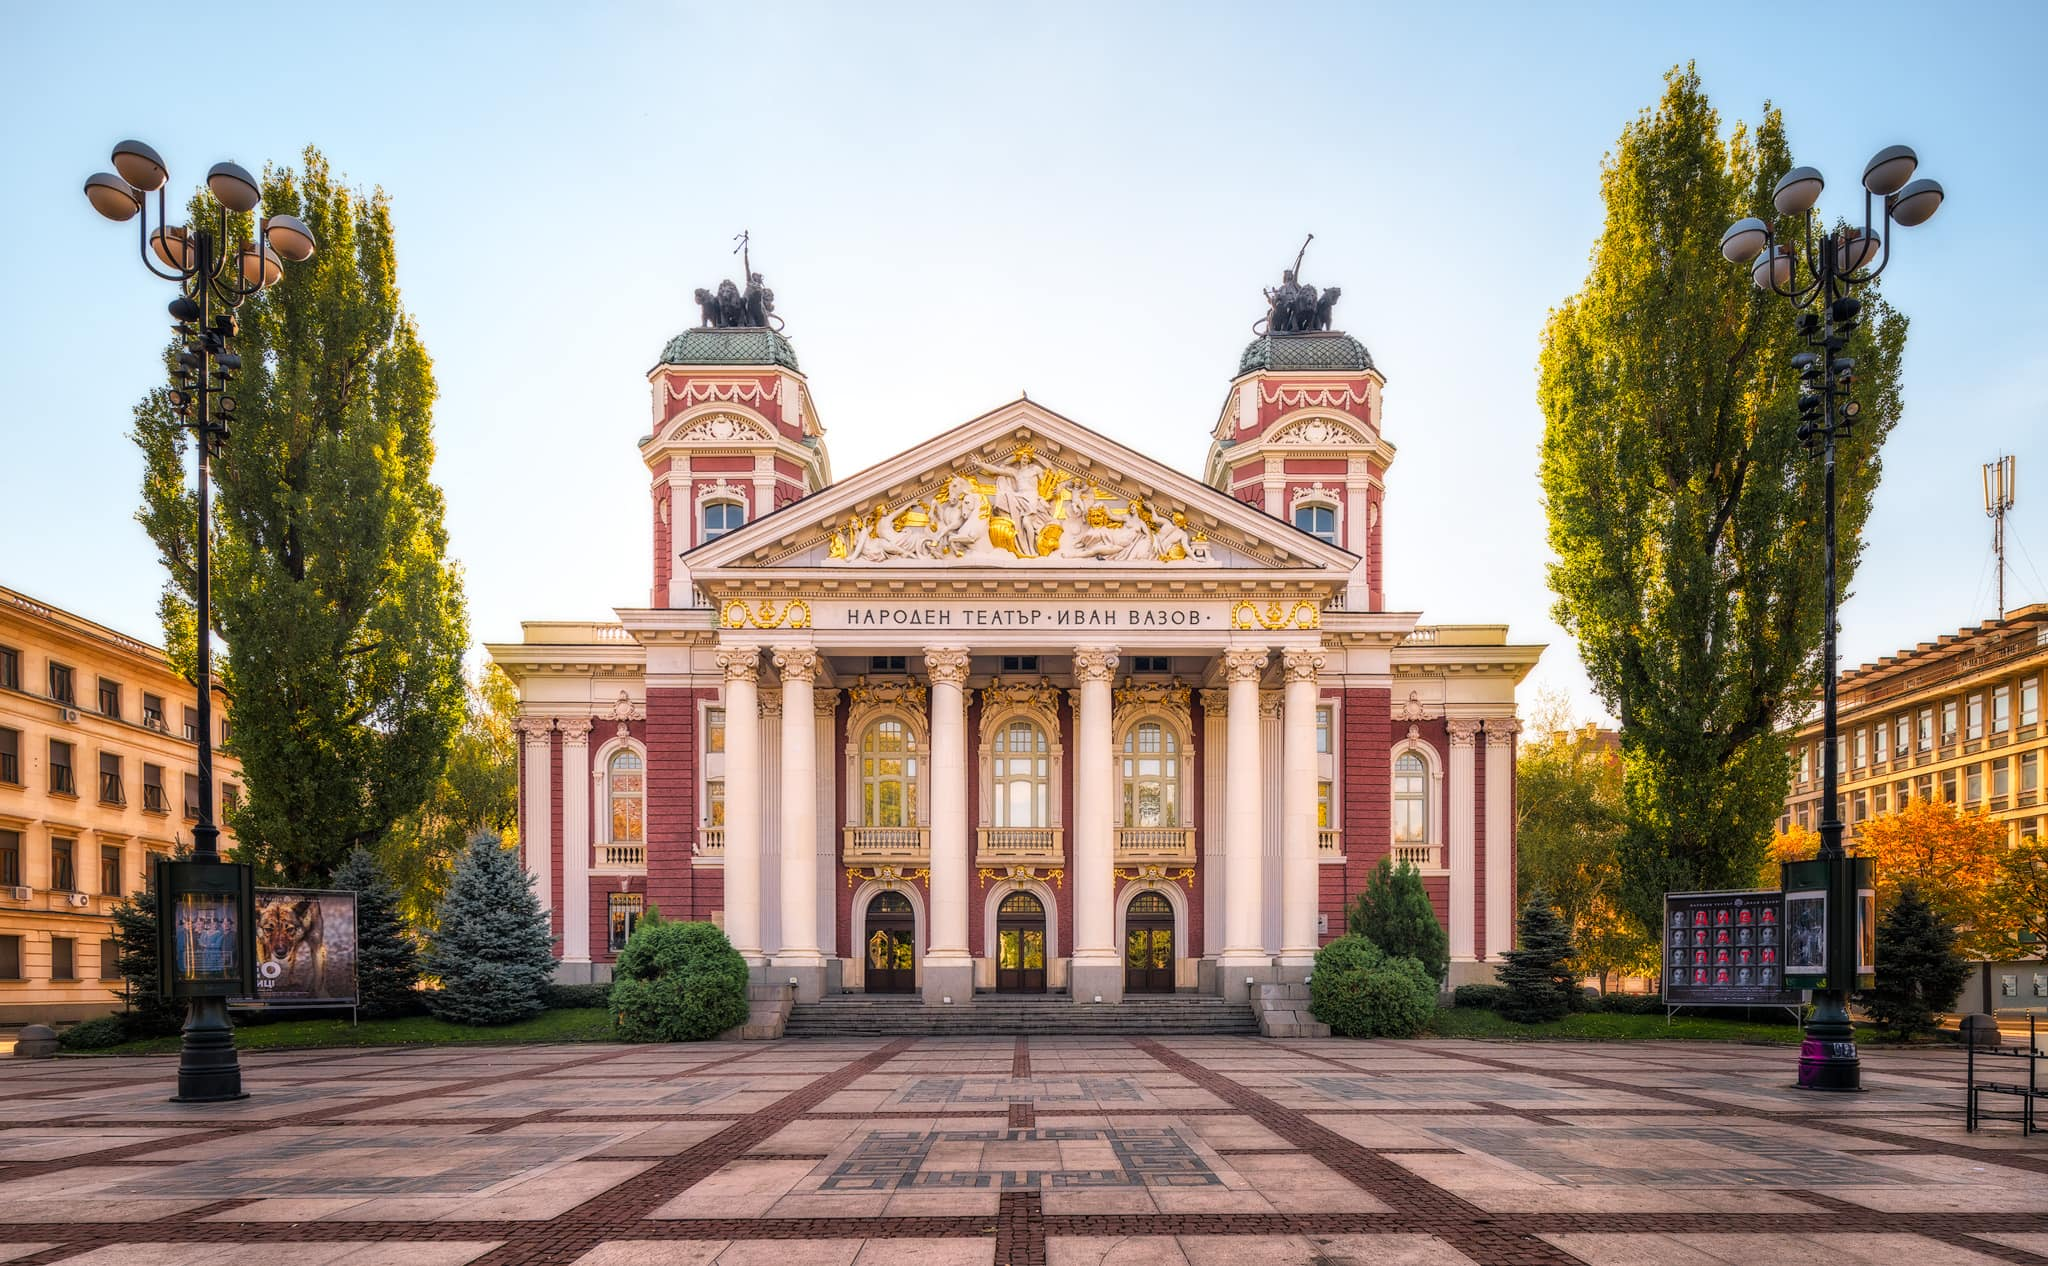 Ivan Vazov Nationaal Theater in de ochtendzon in Sofia, Bulgarije.